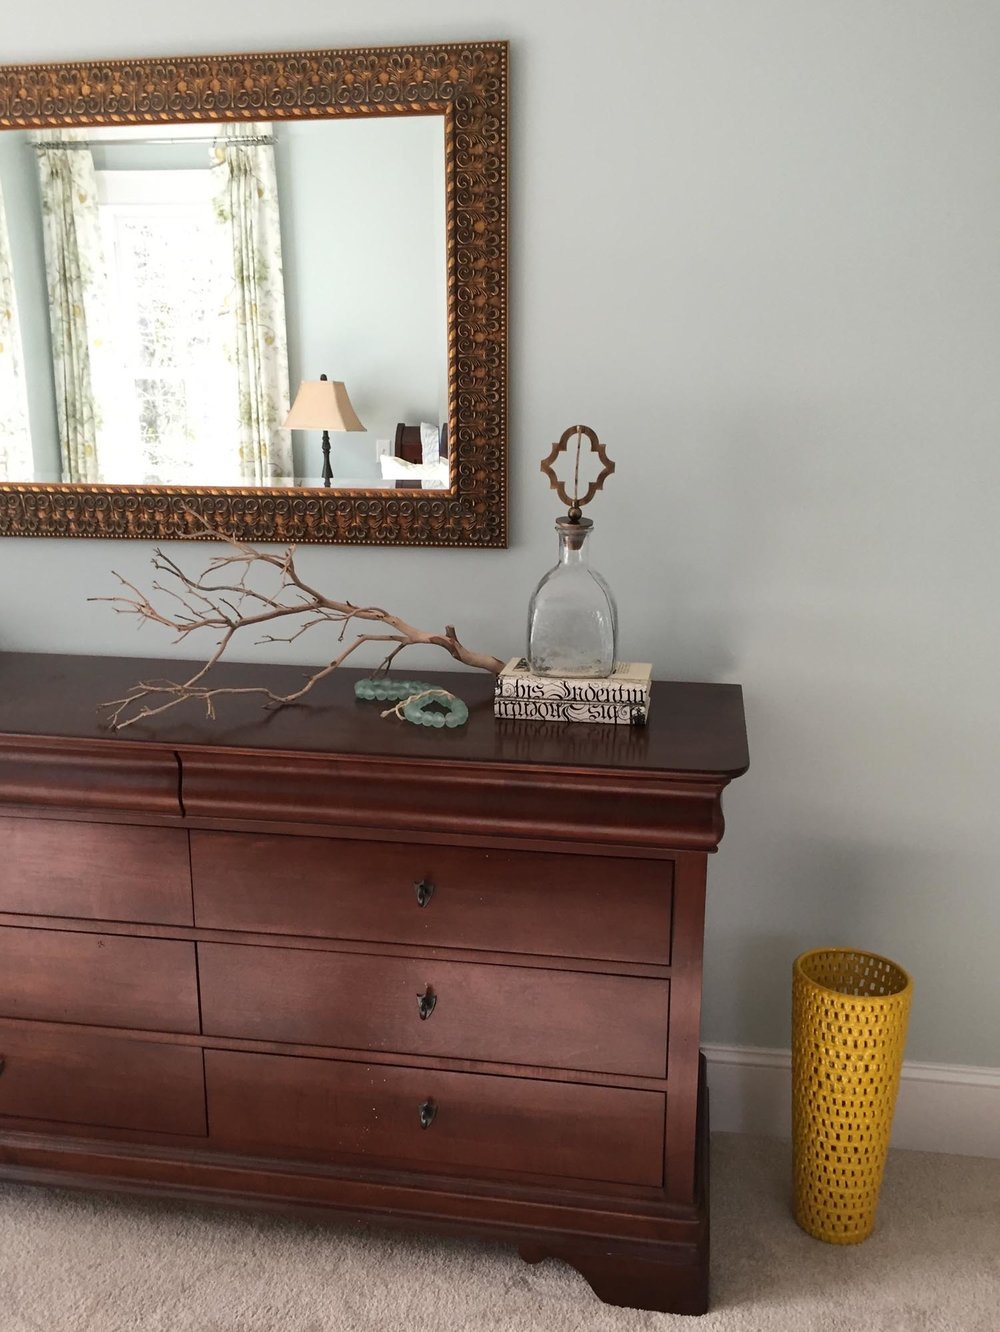 Coastal inspired accessories on oak dresser with hanging mirror